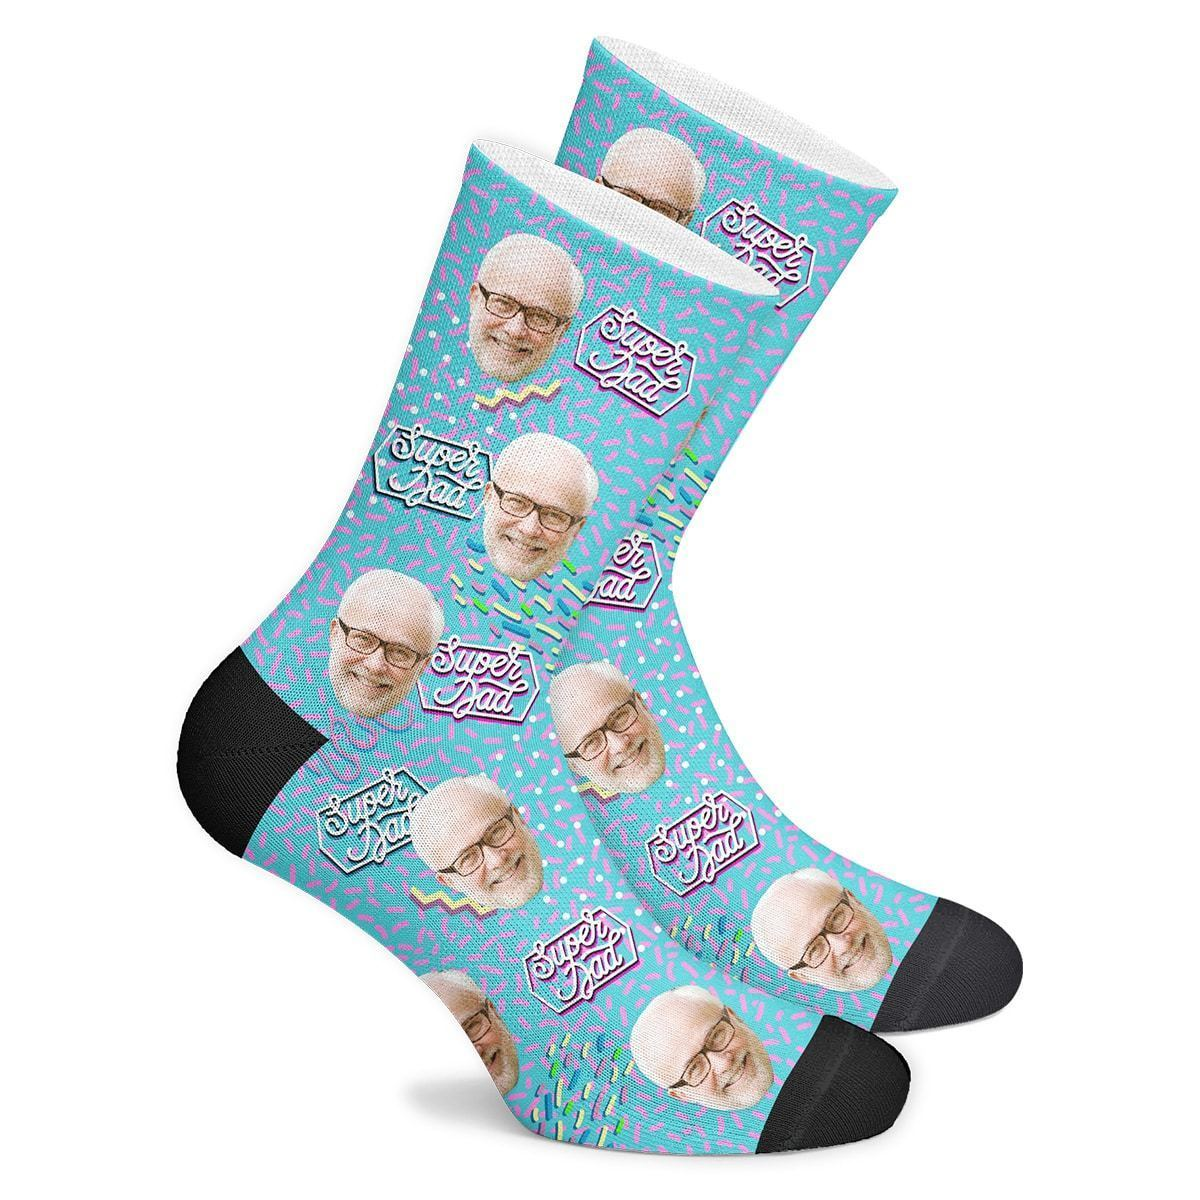 Super Dad Retro Custom Face Socks - MyPhotoBags